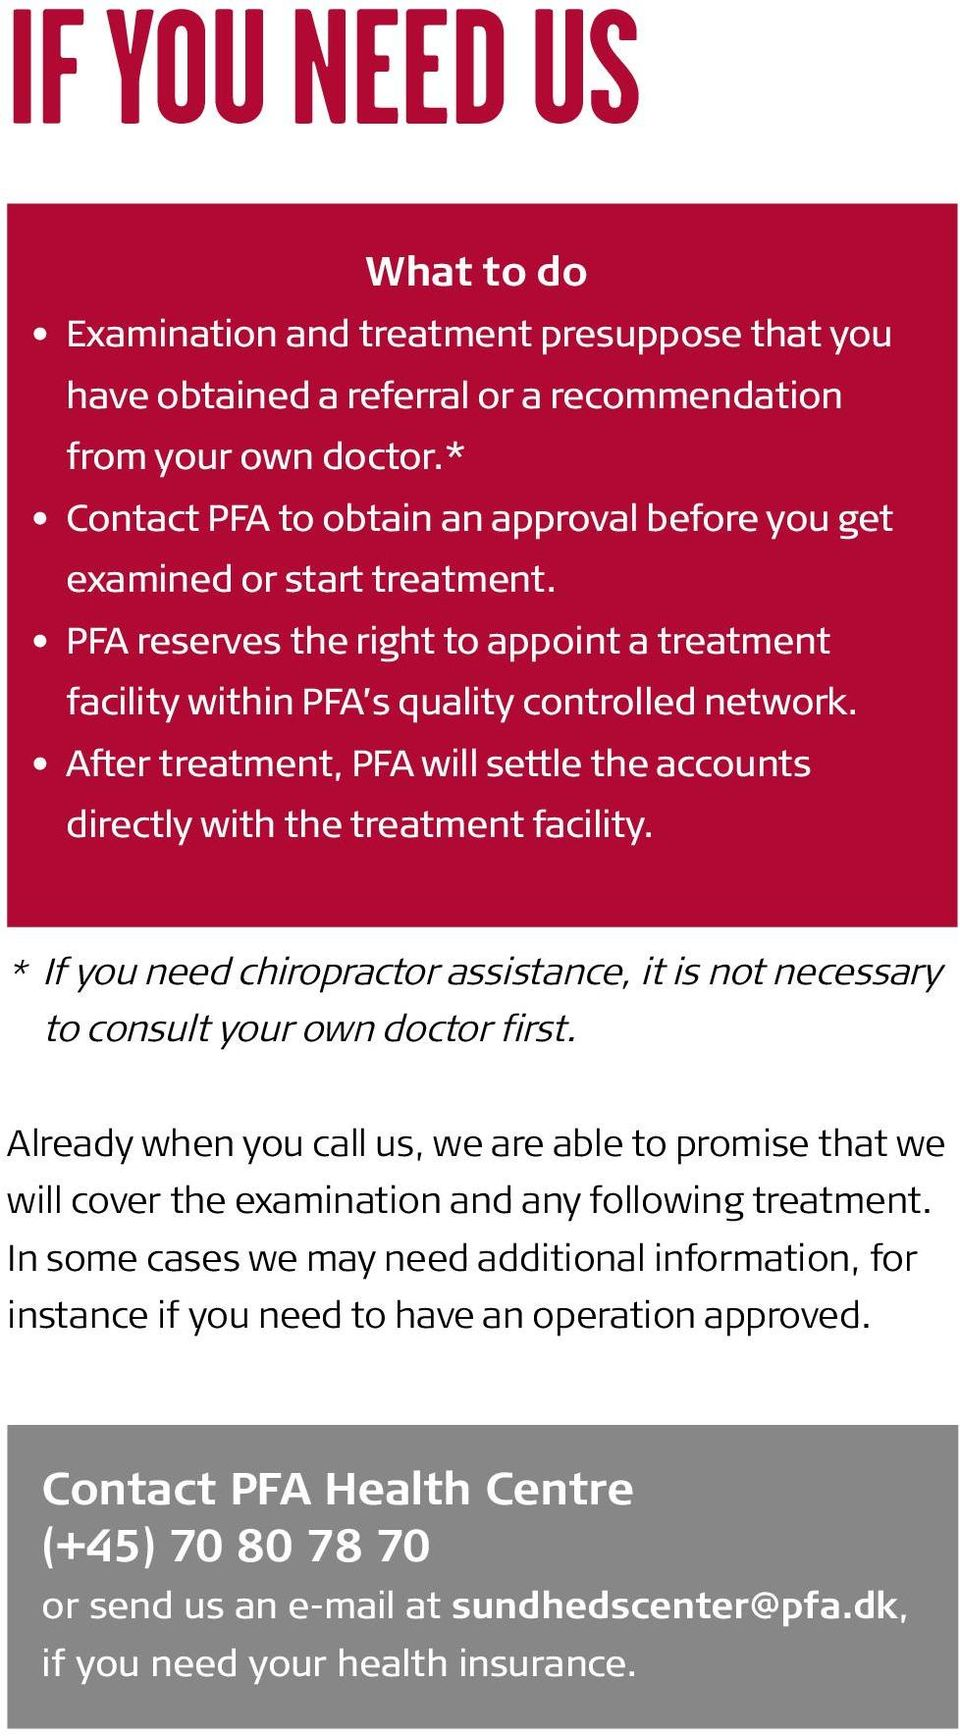 After treatment, PFA will settle the accounts directly with the treatment facility. * If you need chiropractor assistance, it is not necessary to consult your own doctor first.